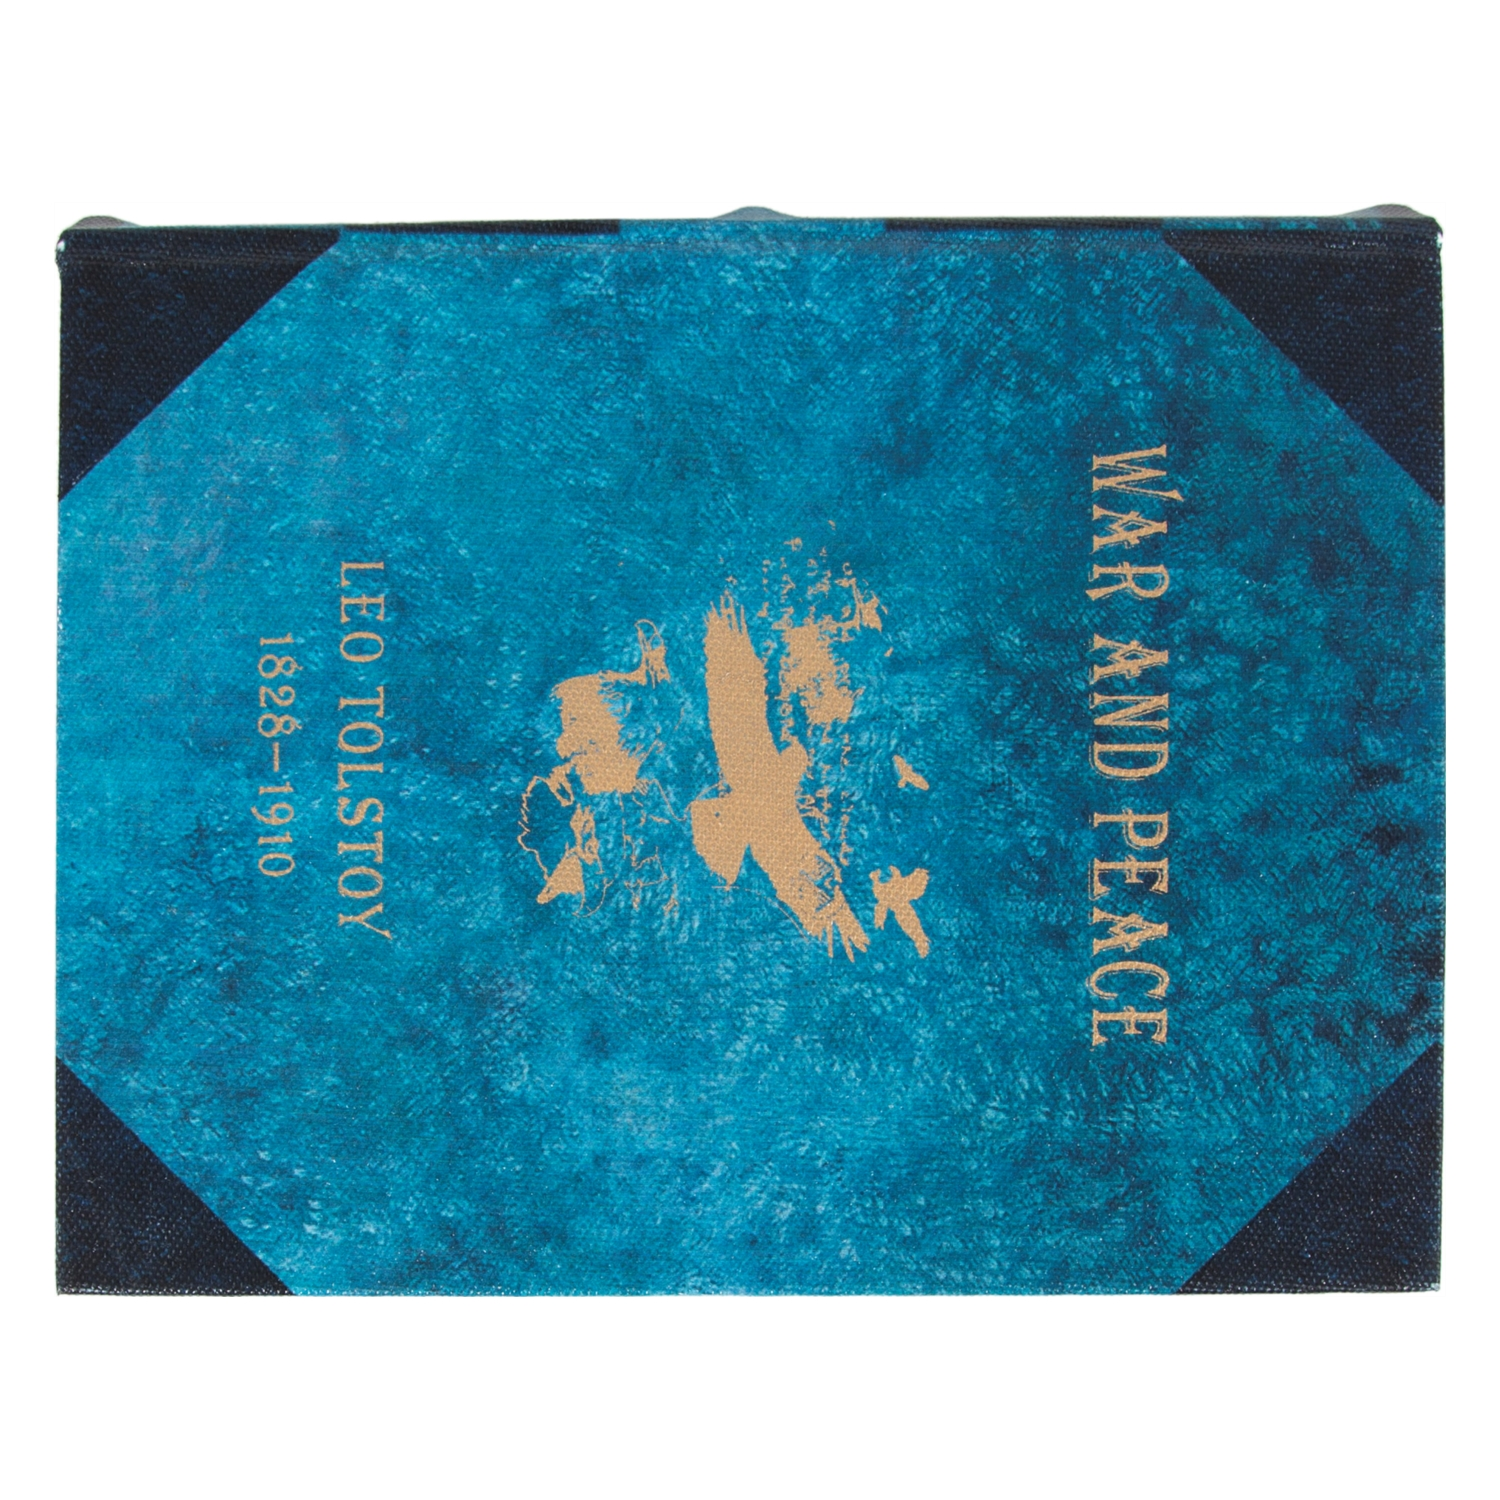 WAR AND PEACE KITAP KUTU 16X5X20CM